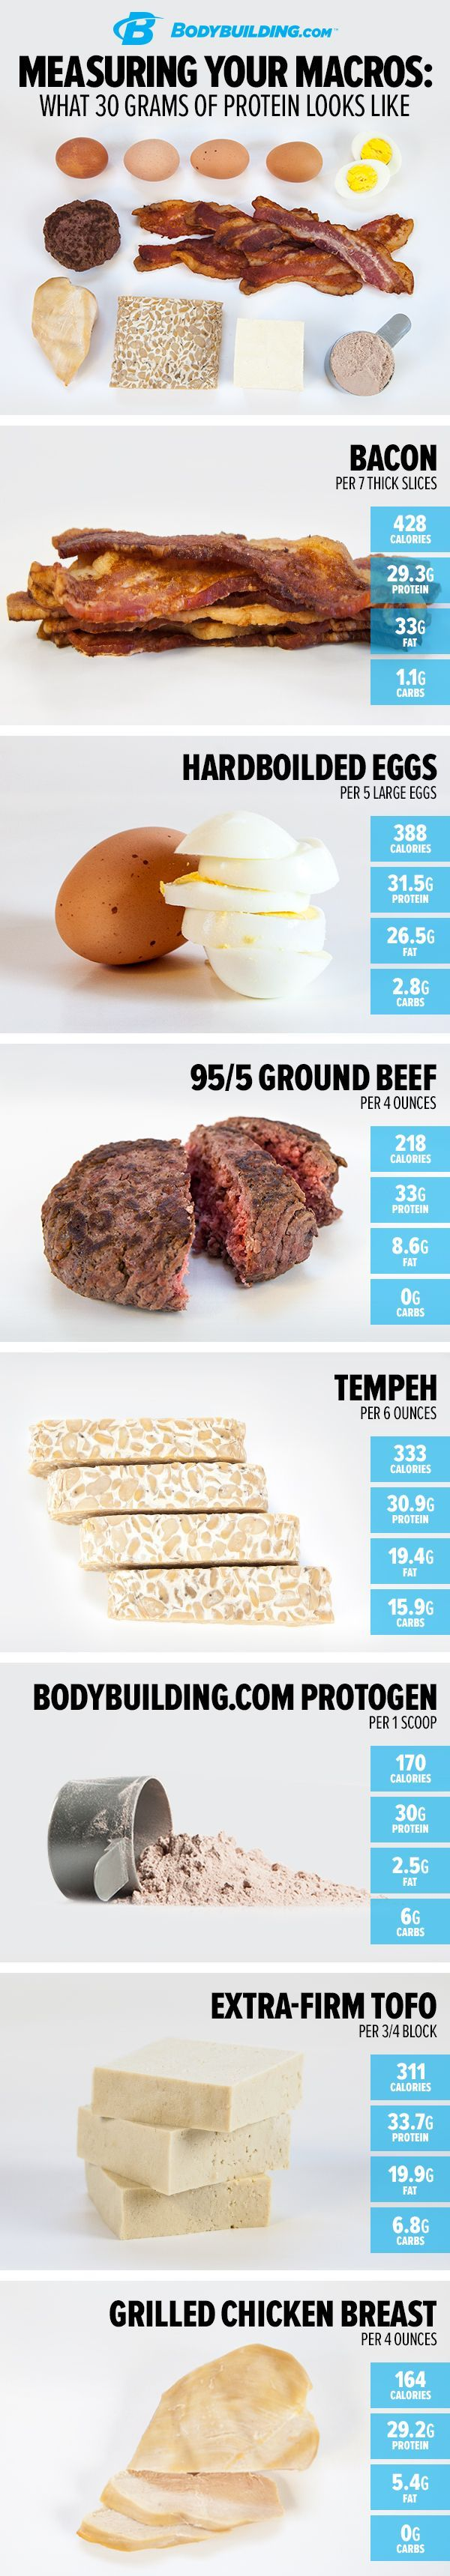 Measuring Your Macros: What 30 Grams of Protein Looks Like! Want to build muscle and lose fat? Then you need protein! Here's how much you need and how to measure it for each meal.